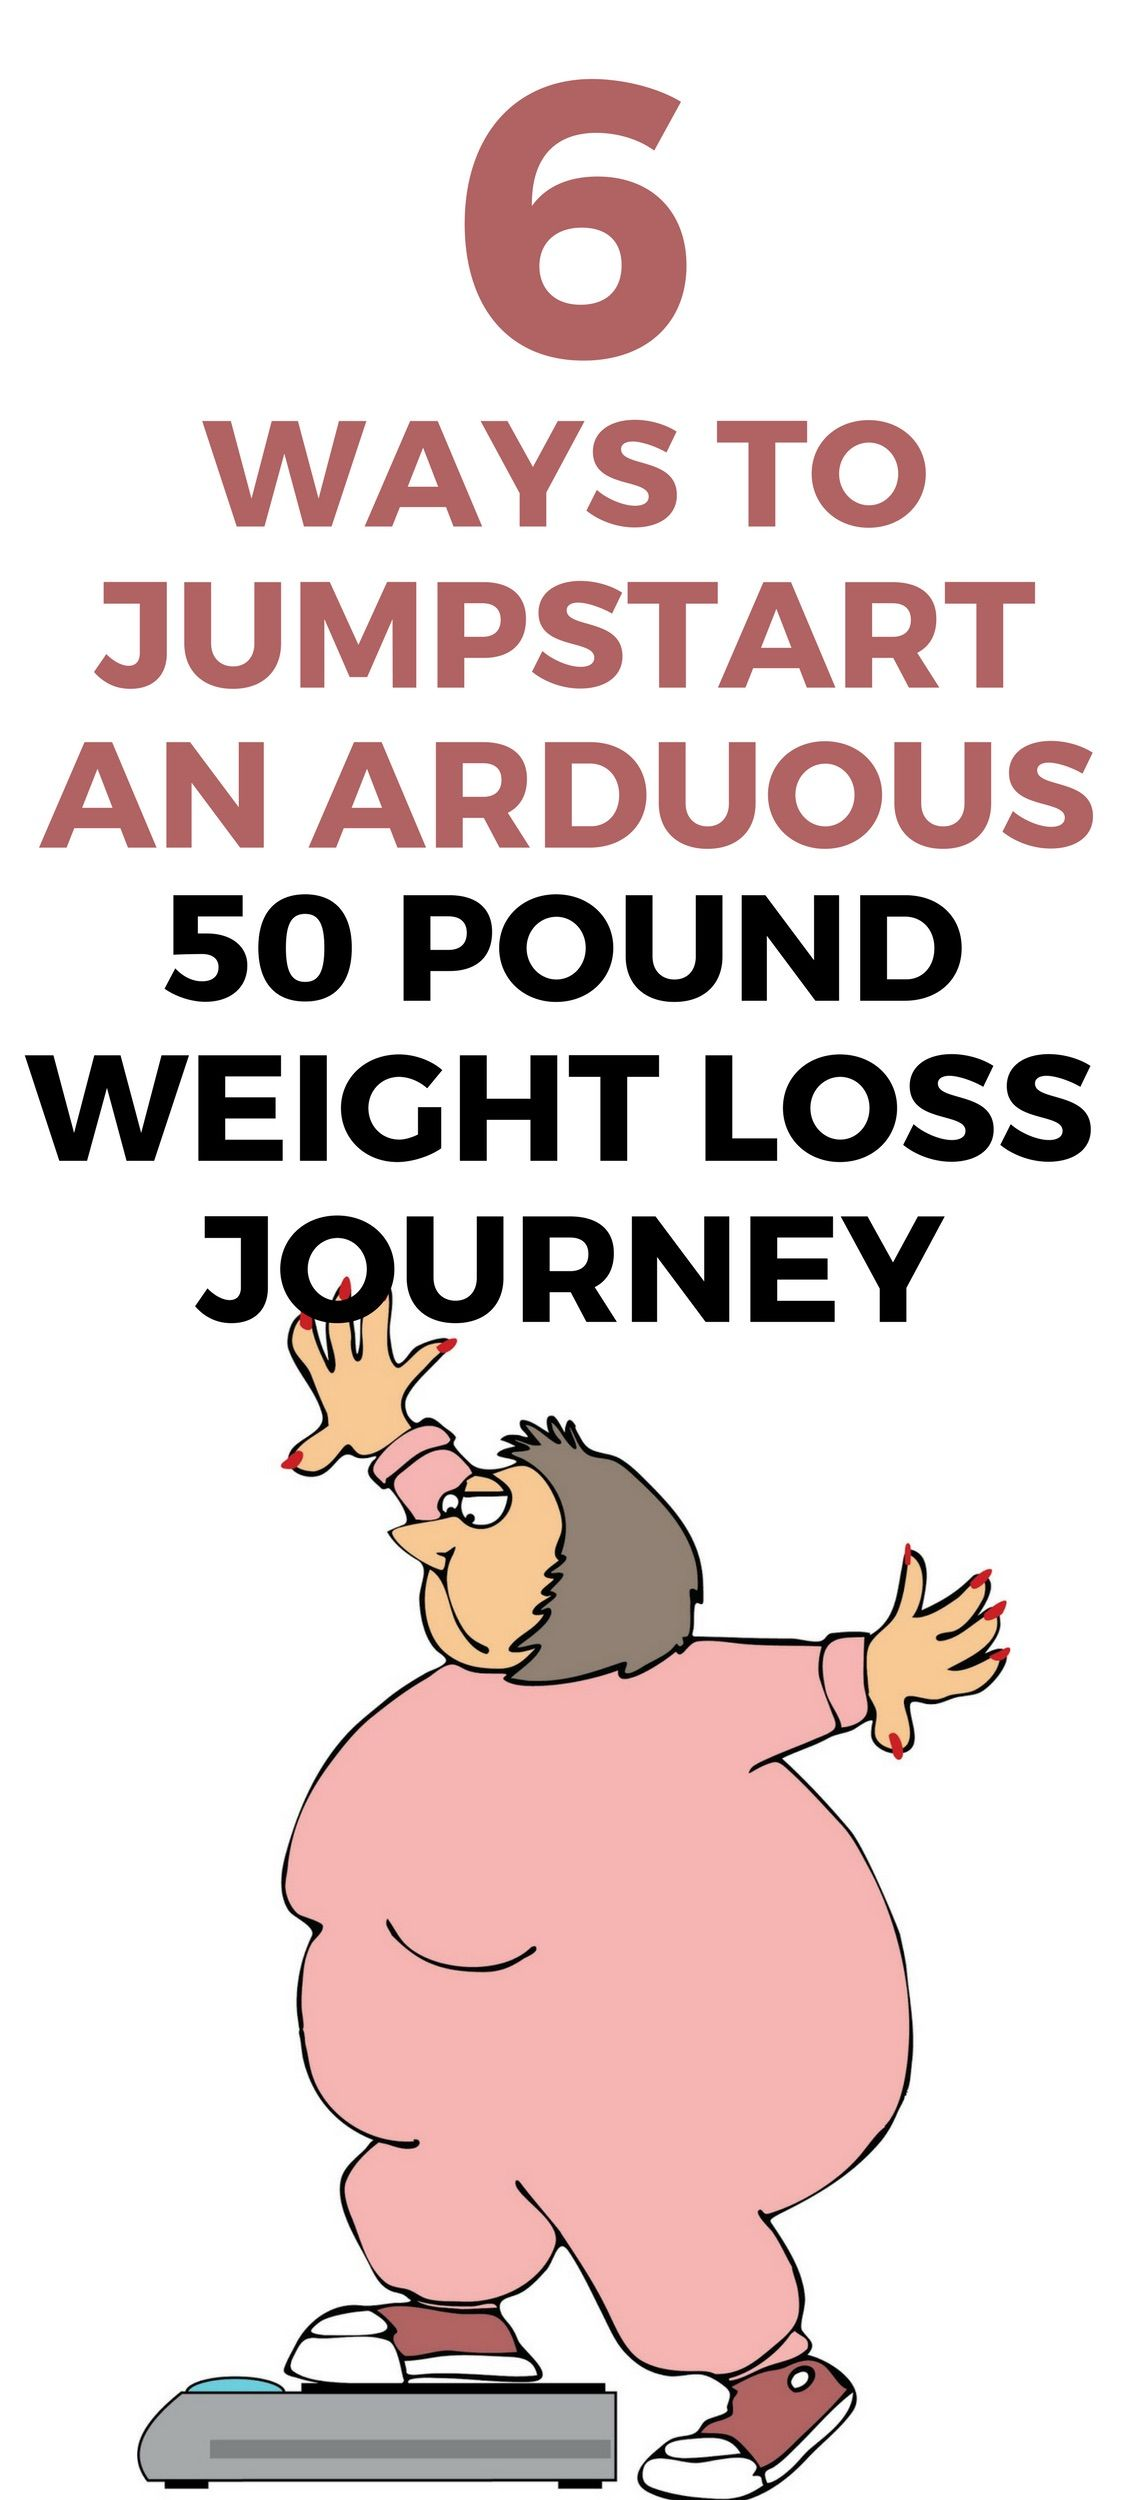 Weight loss workout plan bodybuilding.com image 10